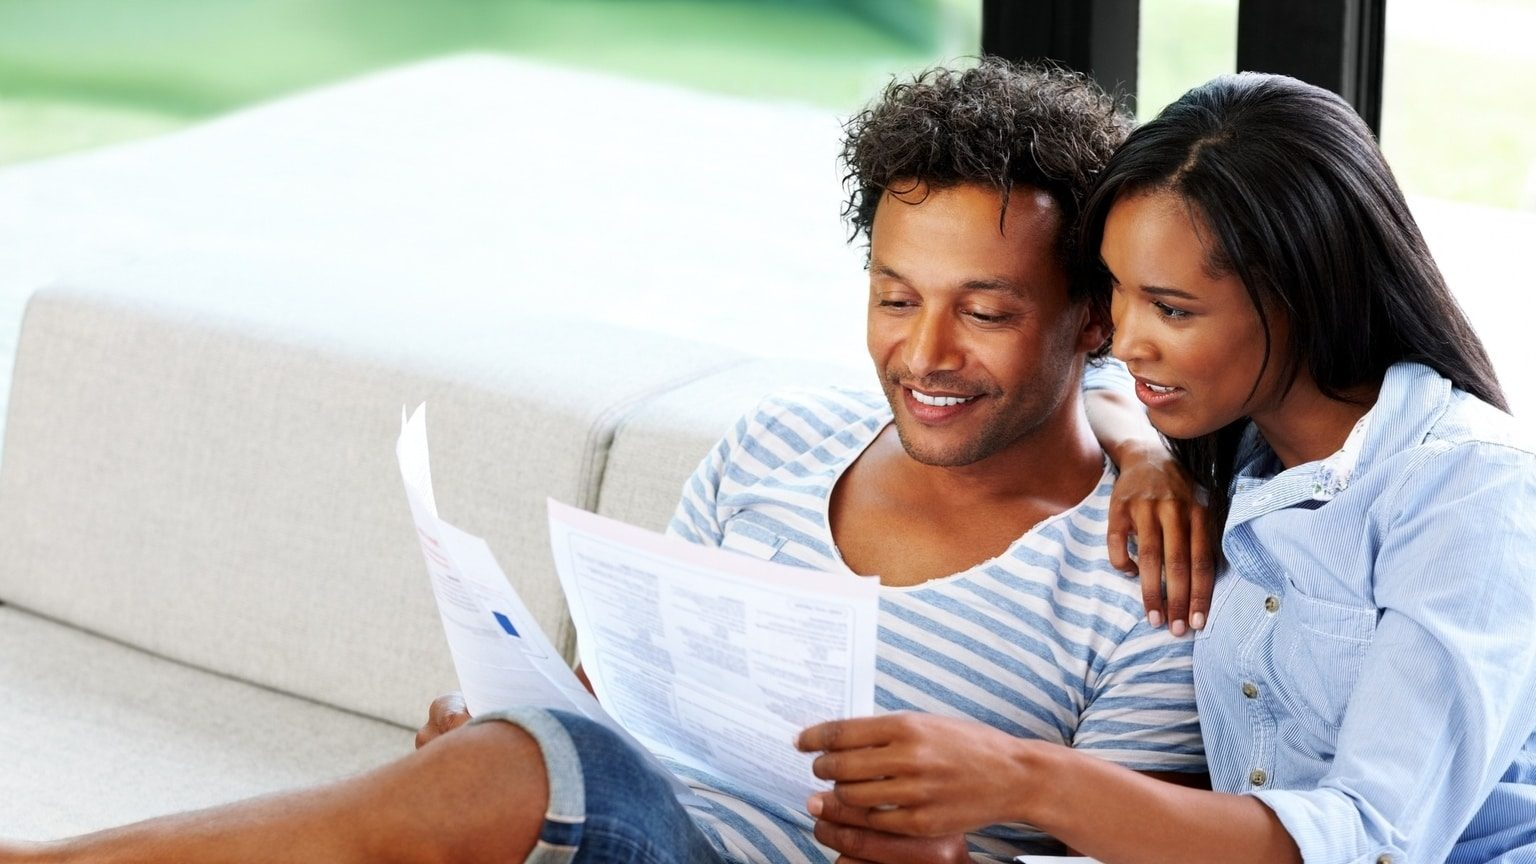 Young couple looking at life insurance documents together